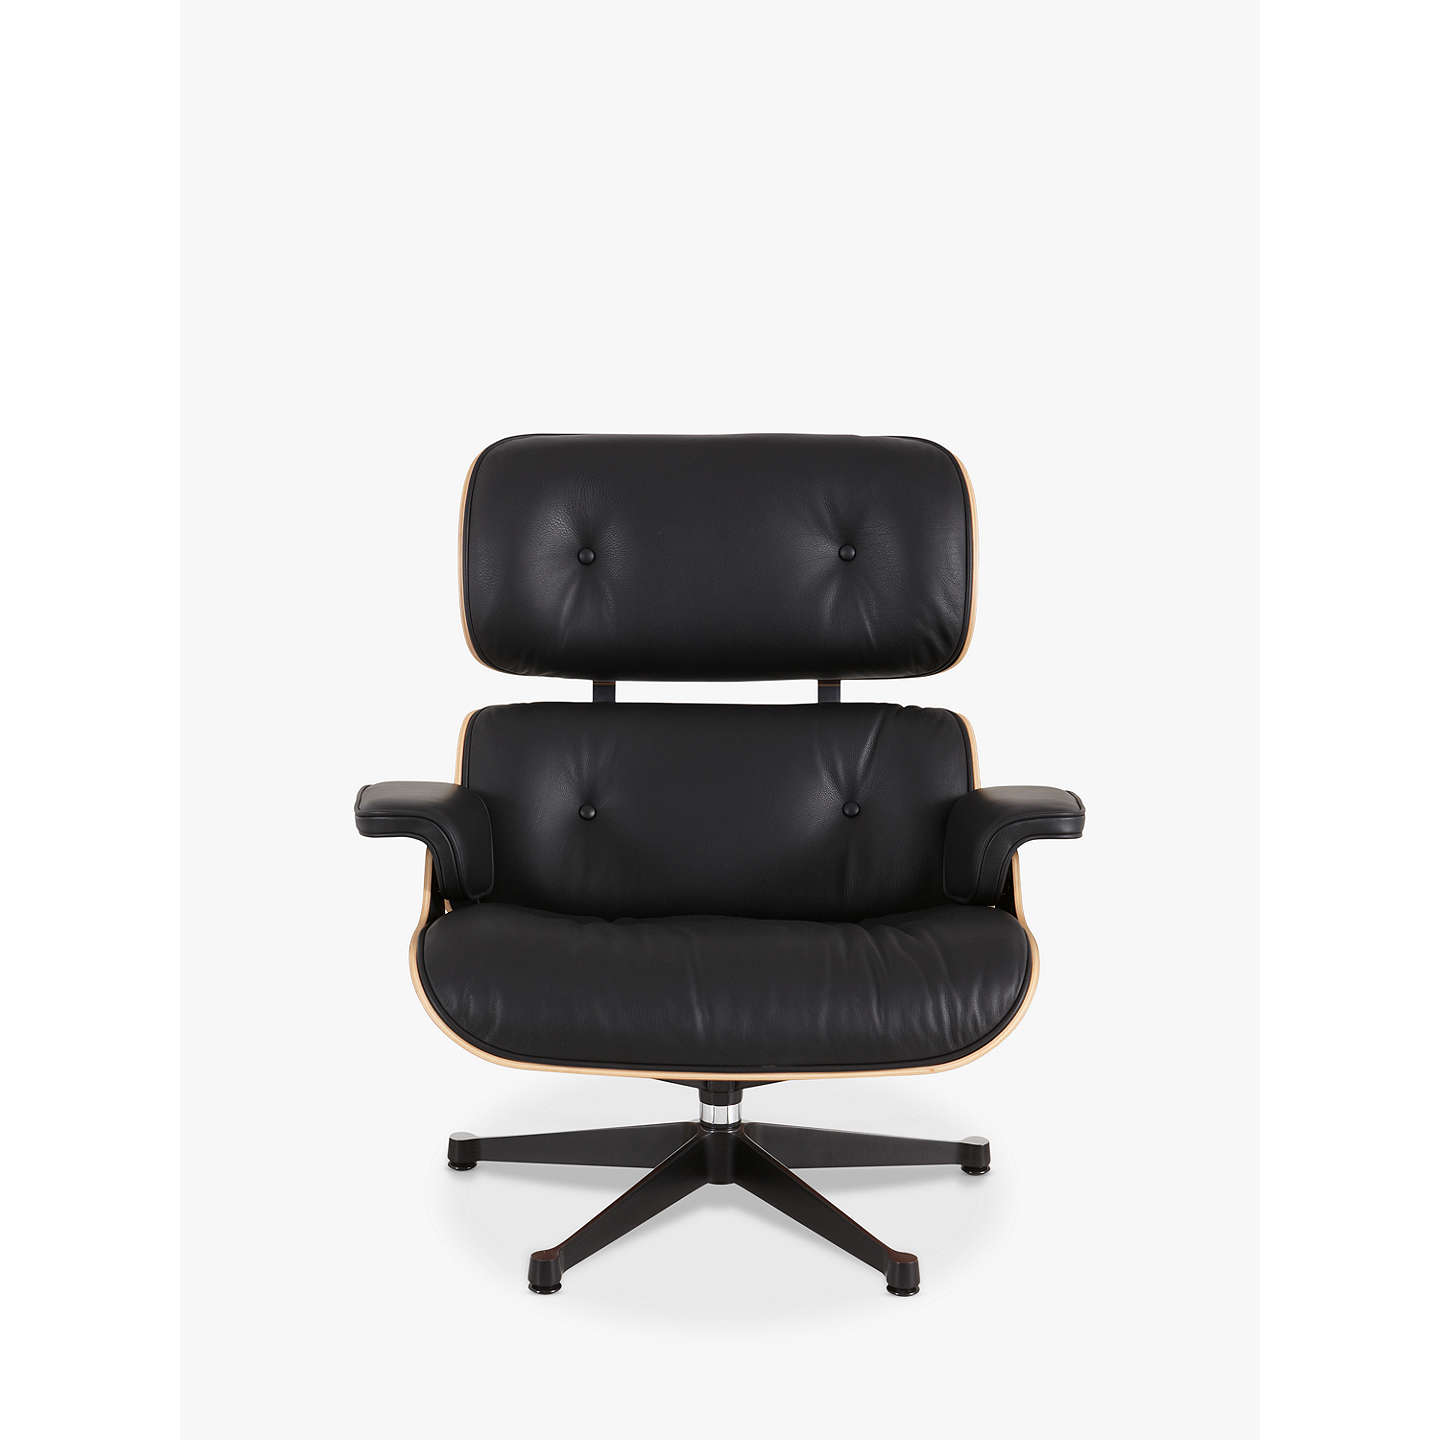 vitra eames lounge armchair at john lewis